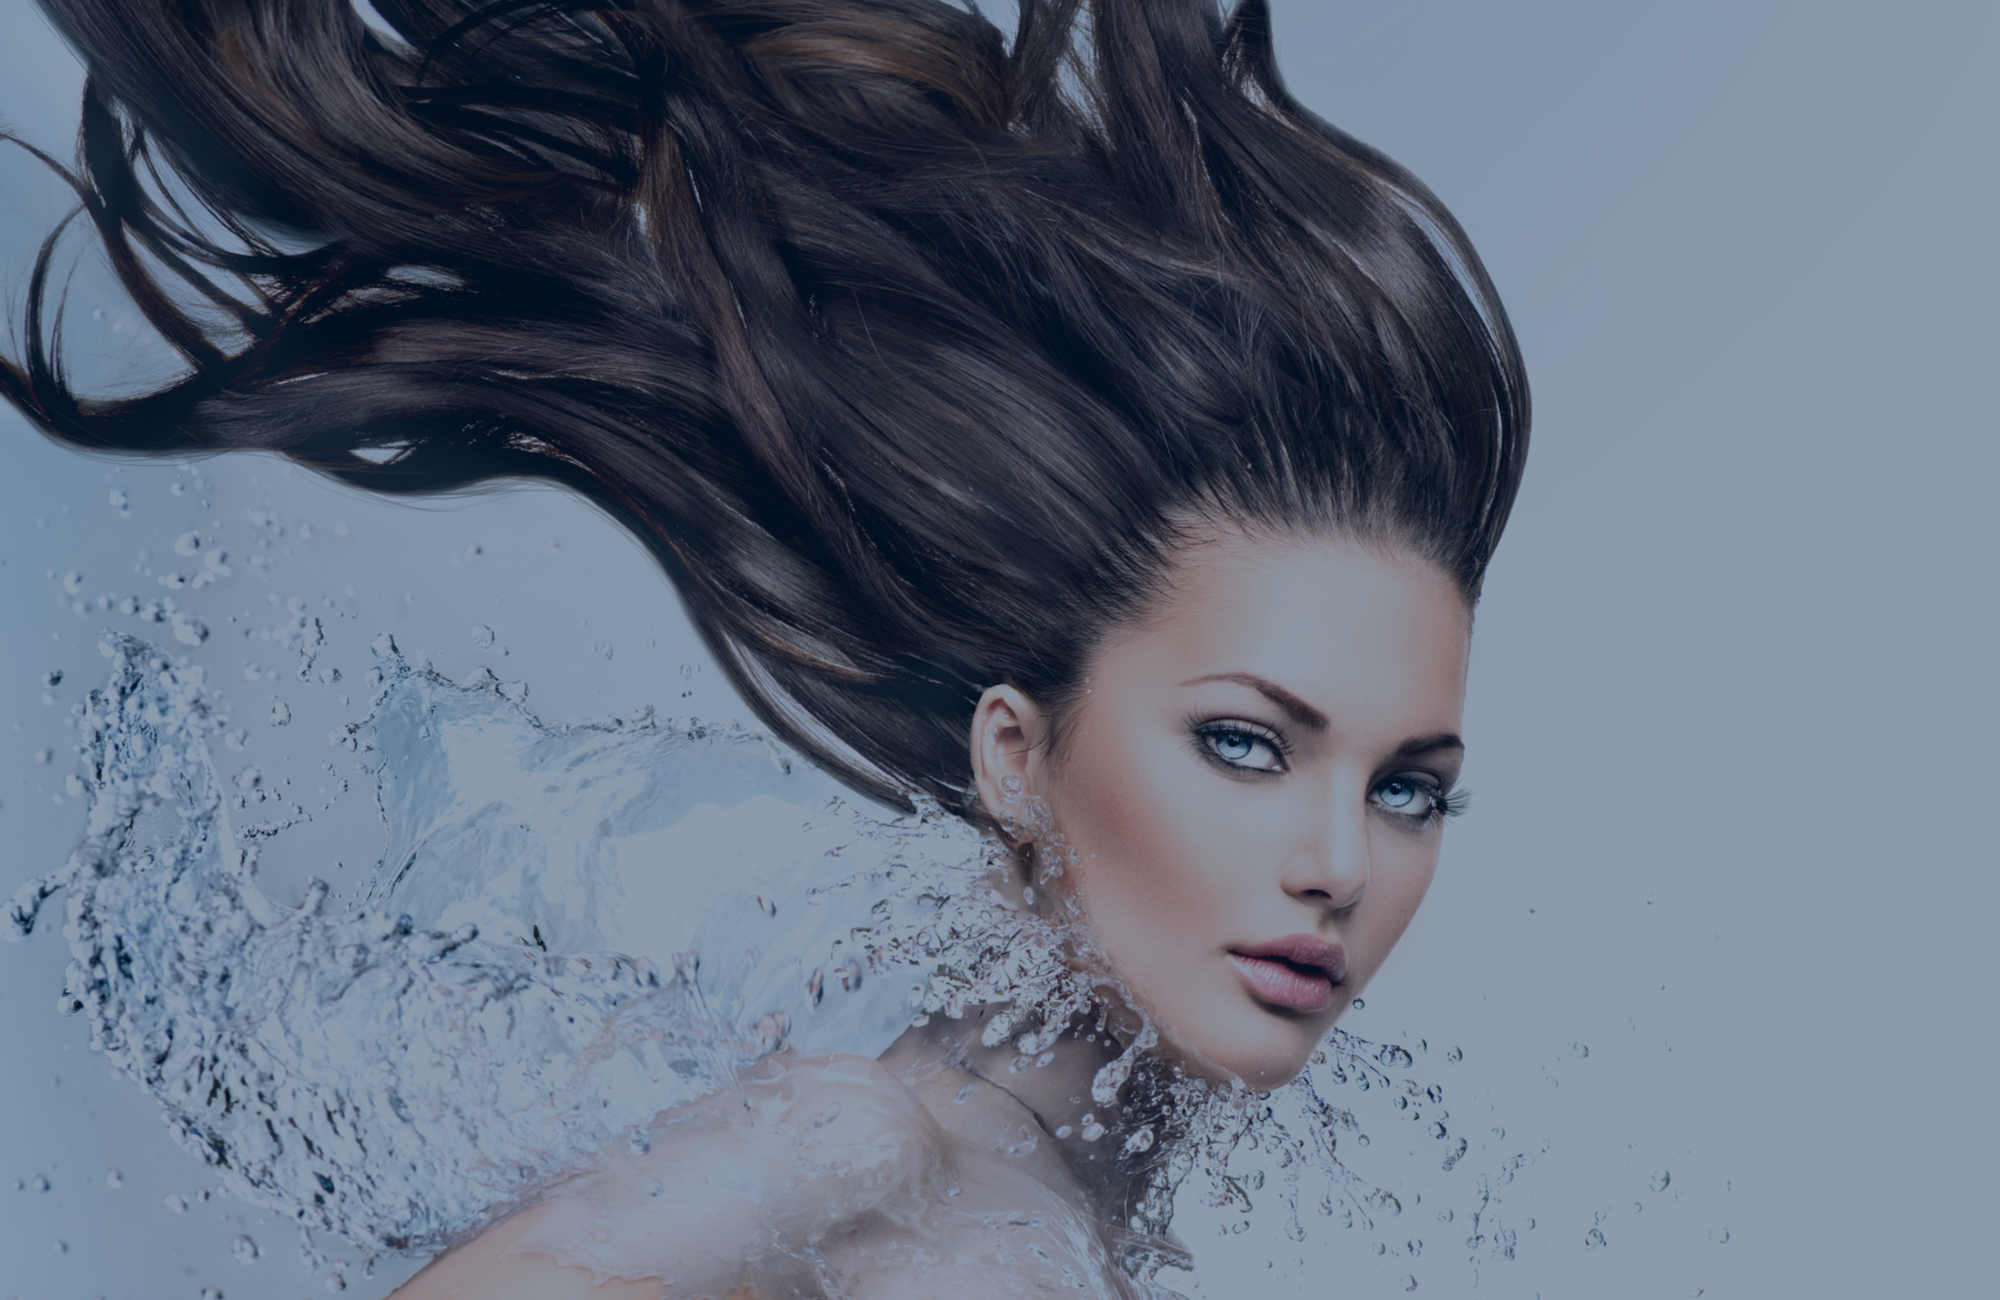 Skin Renewal Marco hair header featuring brunette hair moving through the air with water splashing on her neck